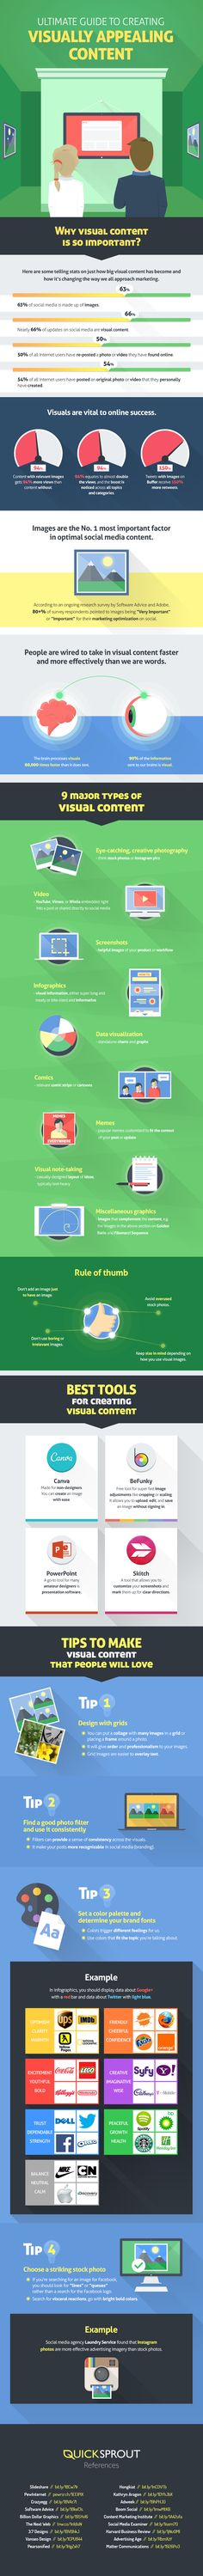 How to Create Social Media Graphics that Spread Like Wildfire - #infographic